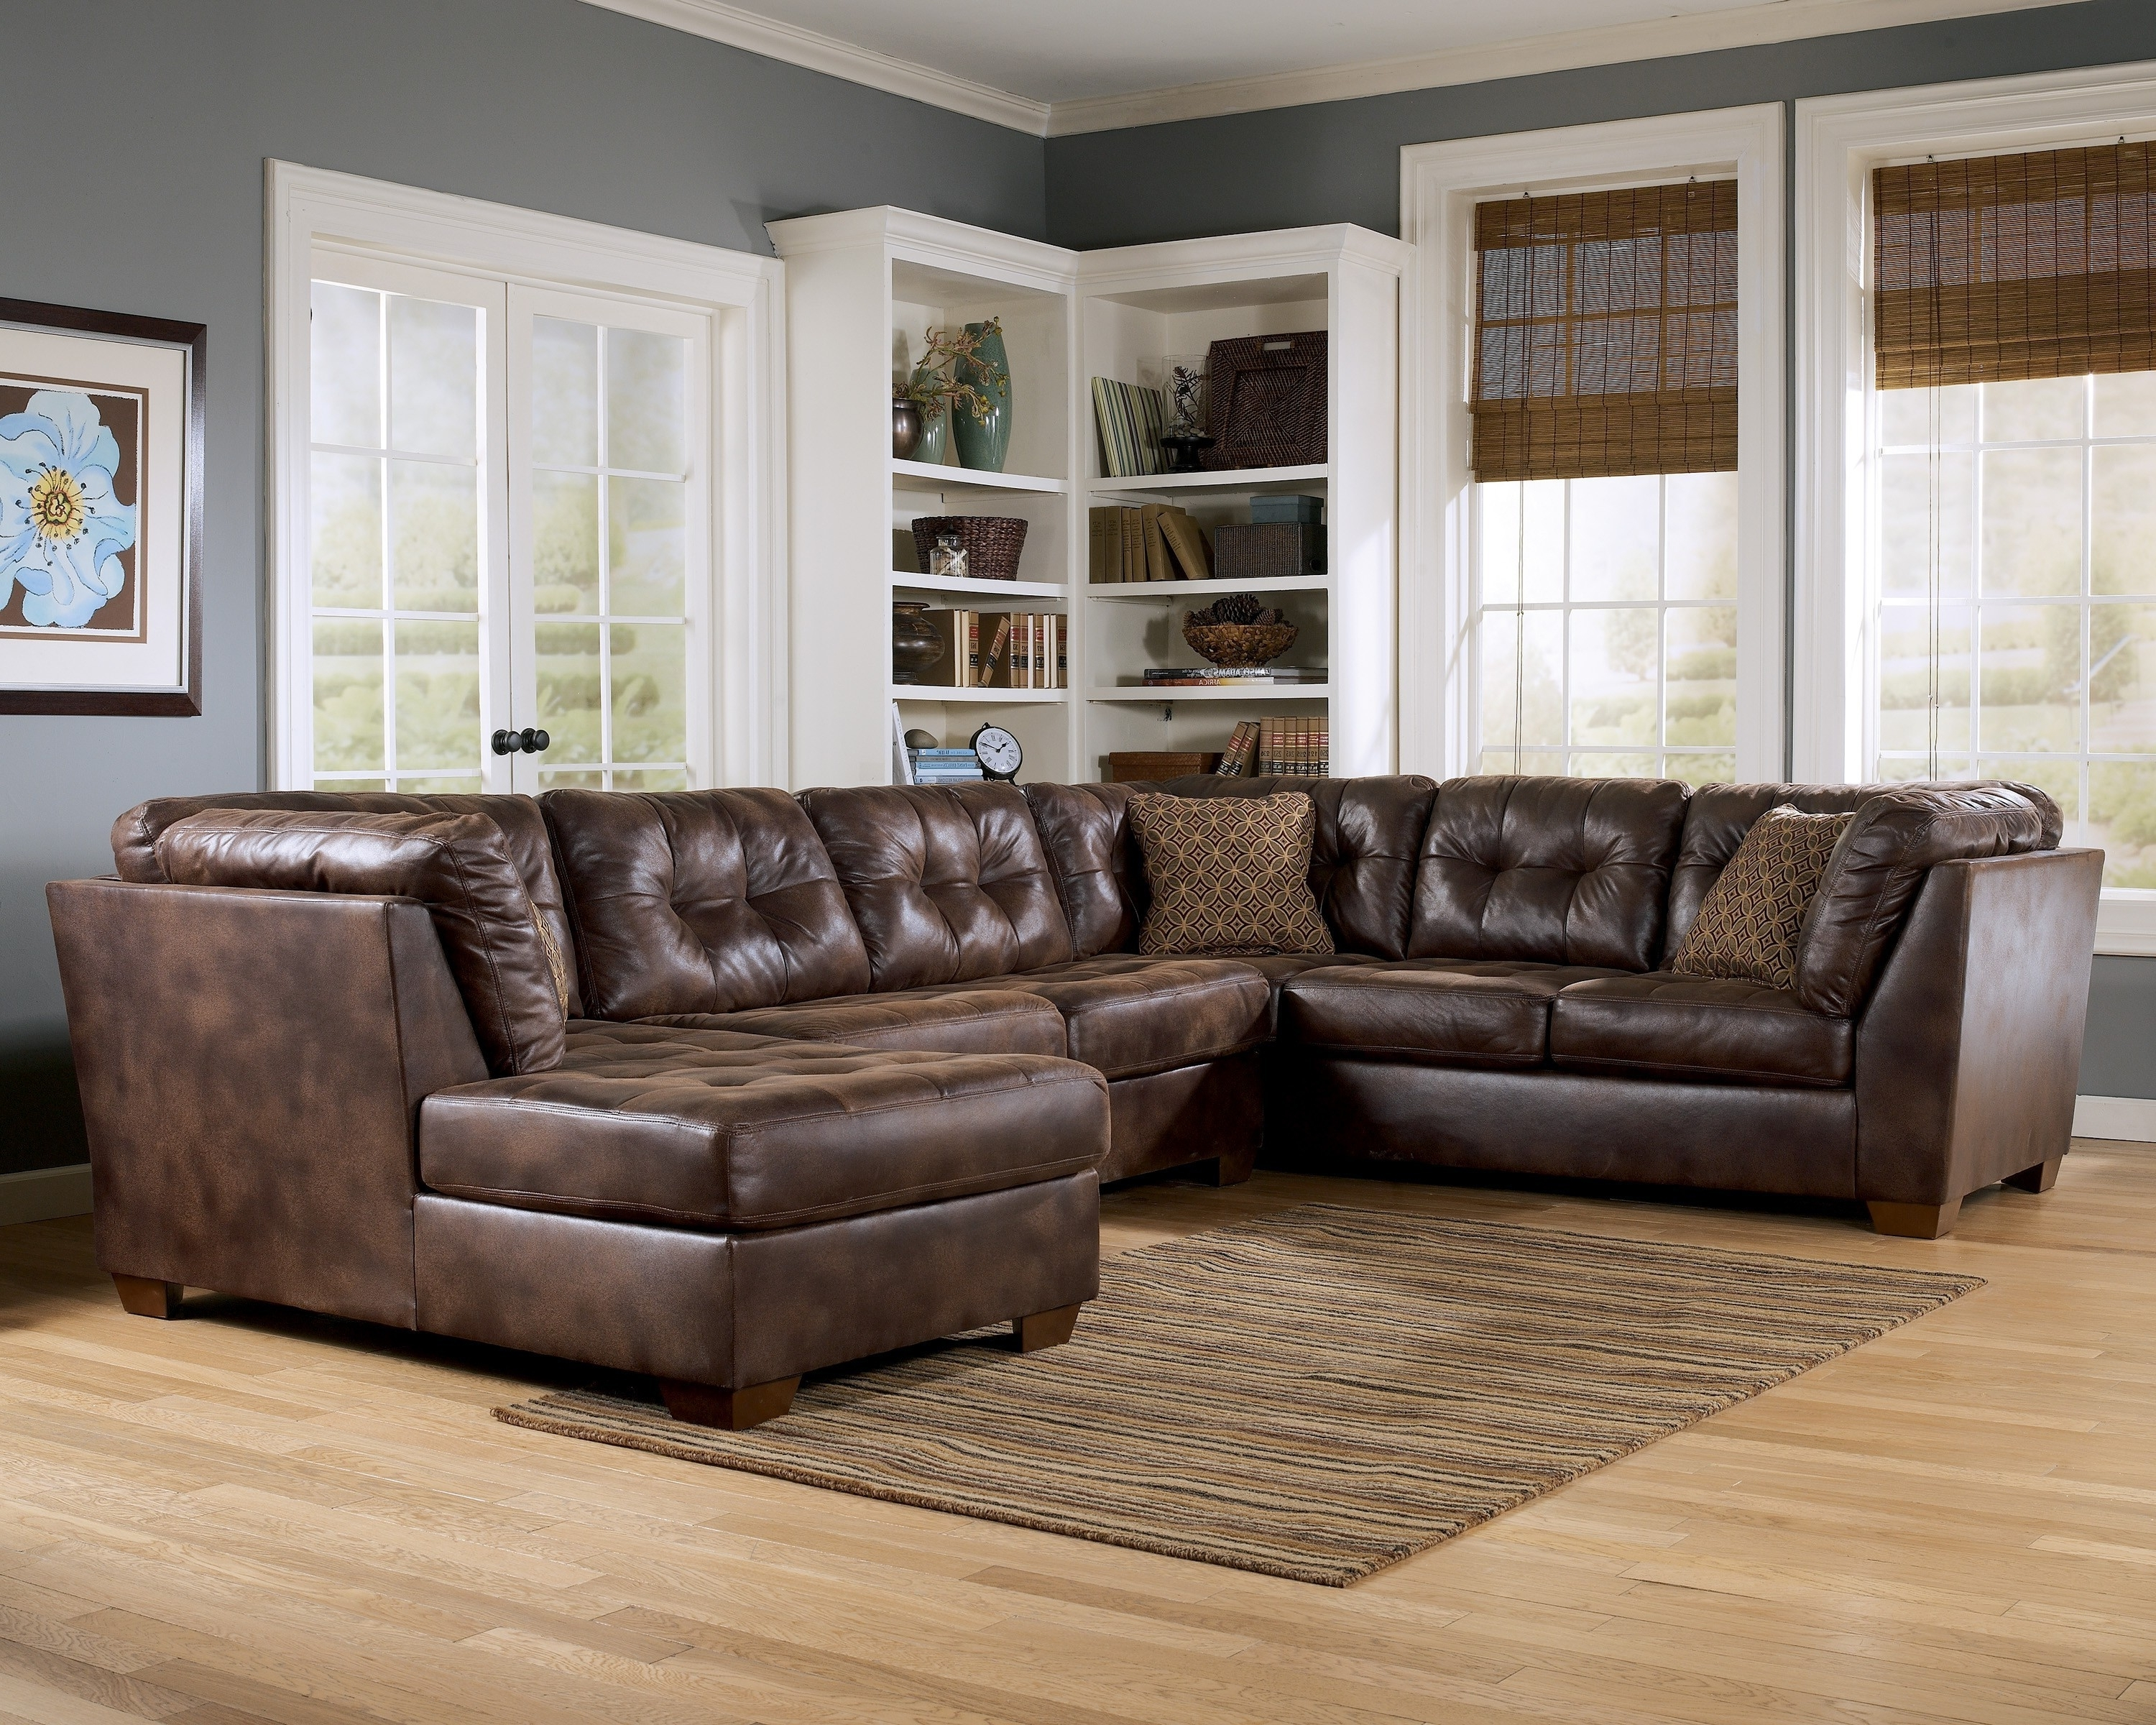 Leather Lounge Sofas Inside Fashionable L Black Leather Chaise Lounge Sofa With Back And Brown Cushions (View 5 of 20)